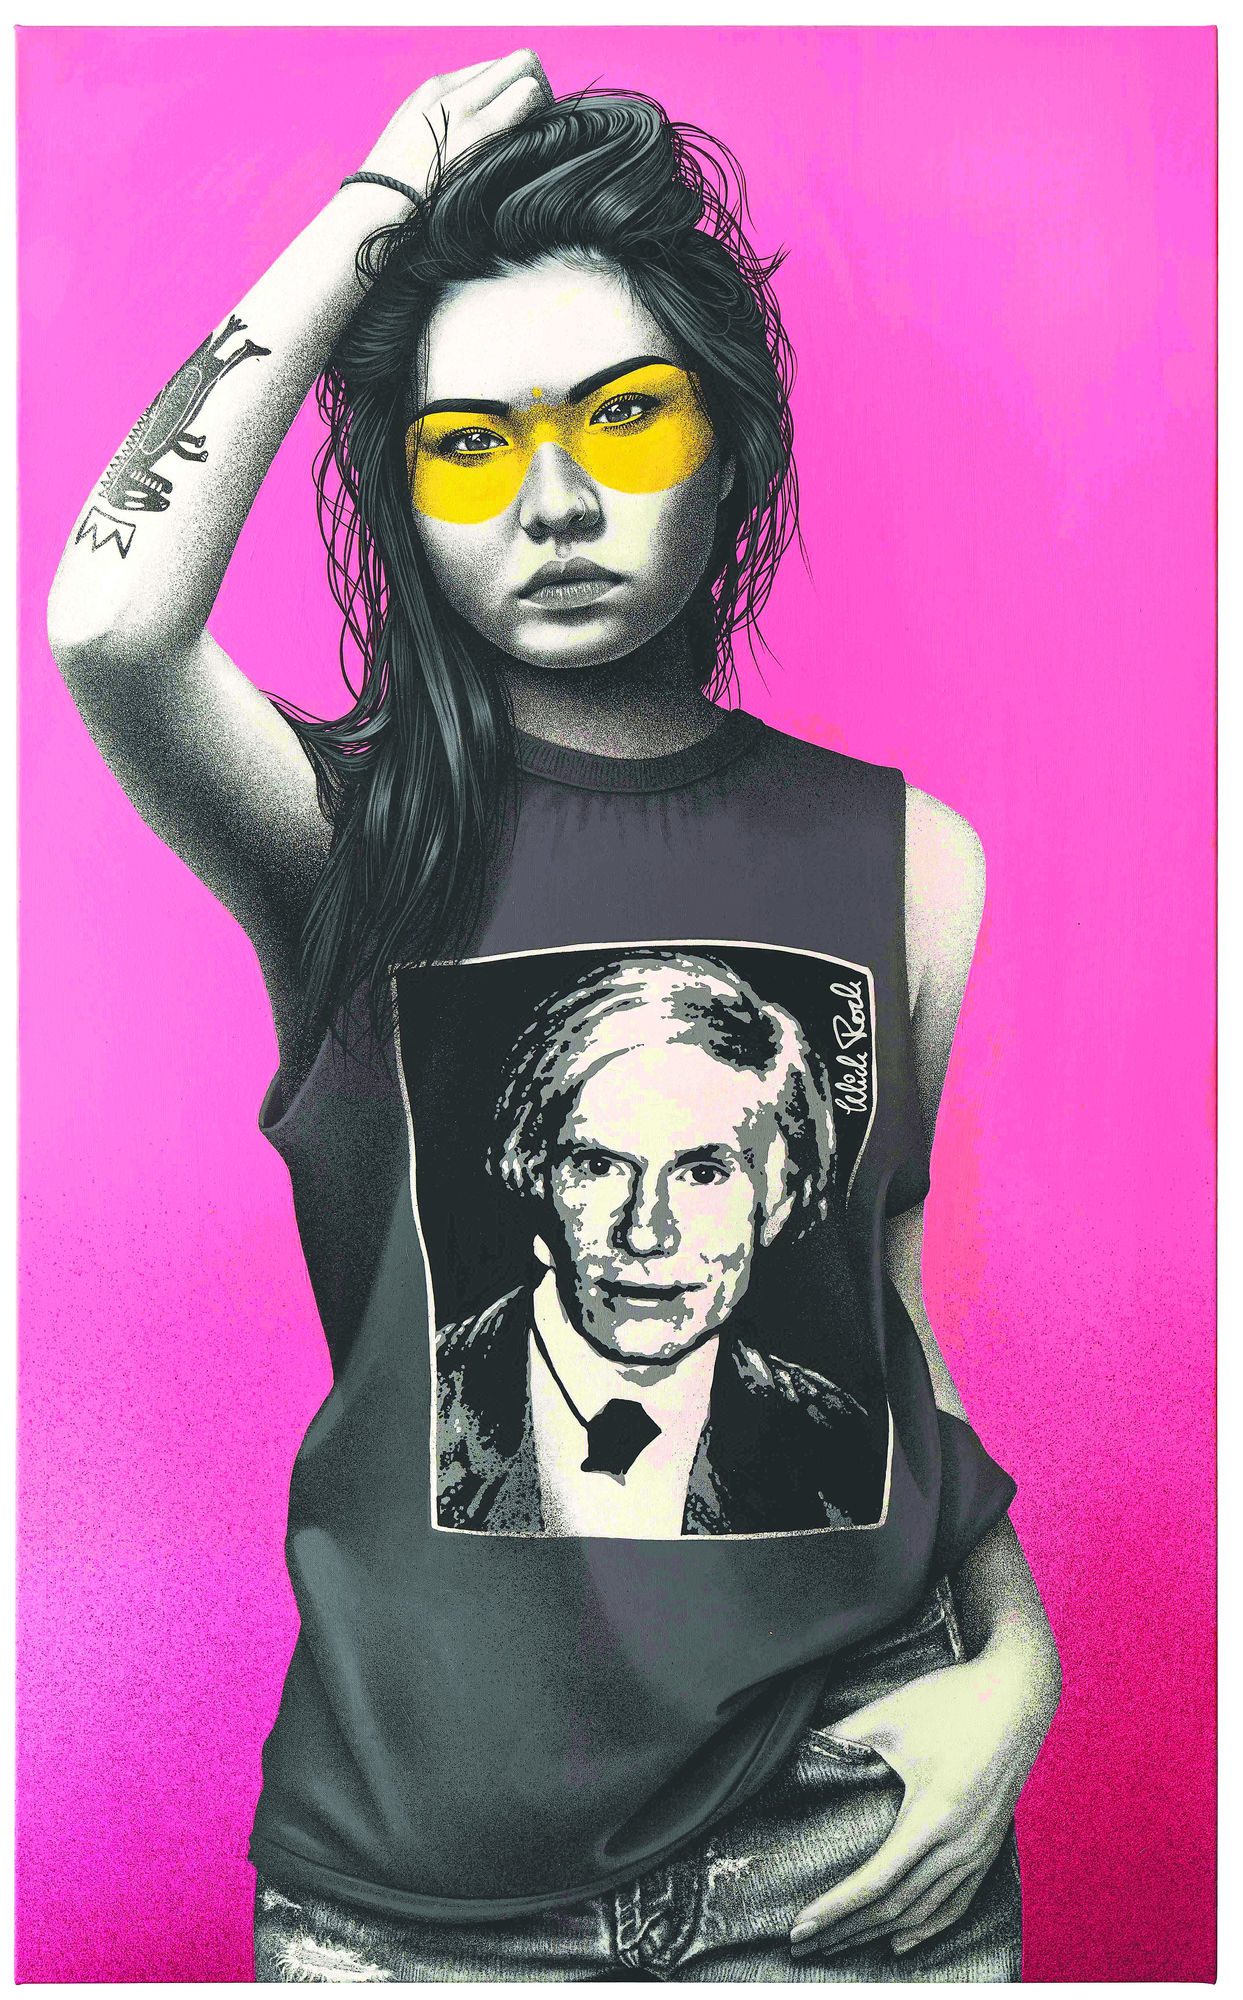 Mick Rock and Fin DAC Present Midaro at West-Contemporary-Editions